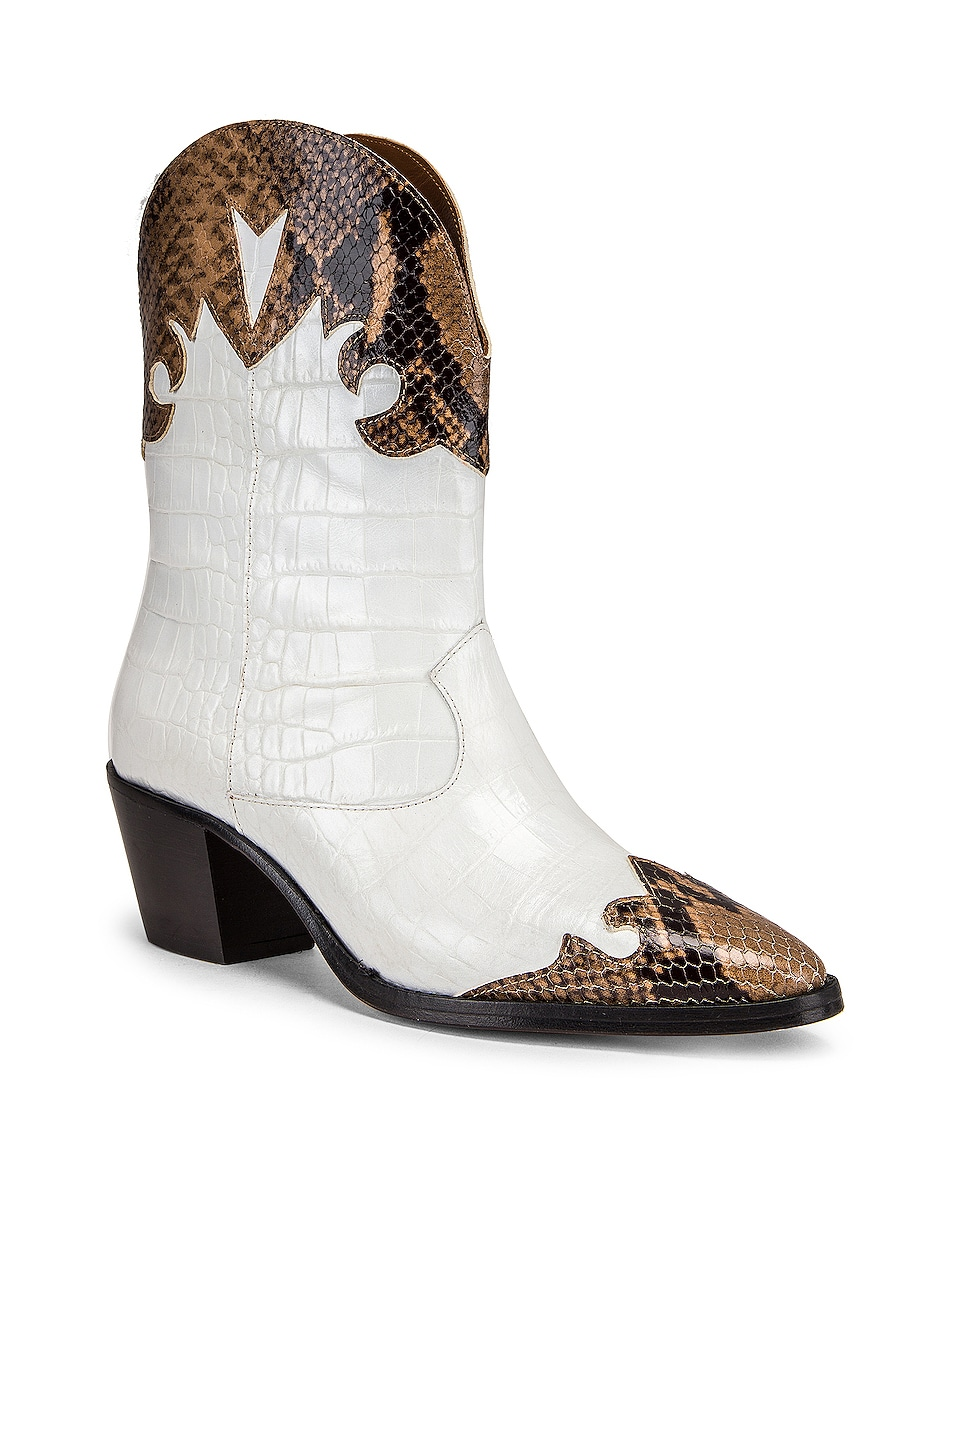 Image 2 of Paris Texas Python Moc Coco Texano Boot in Camel & White